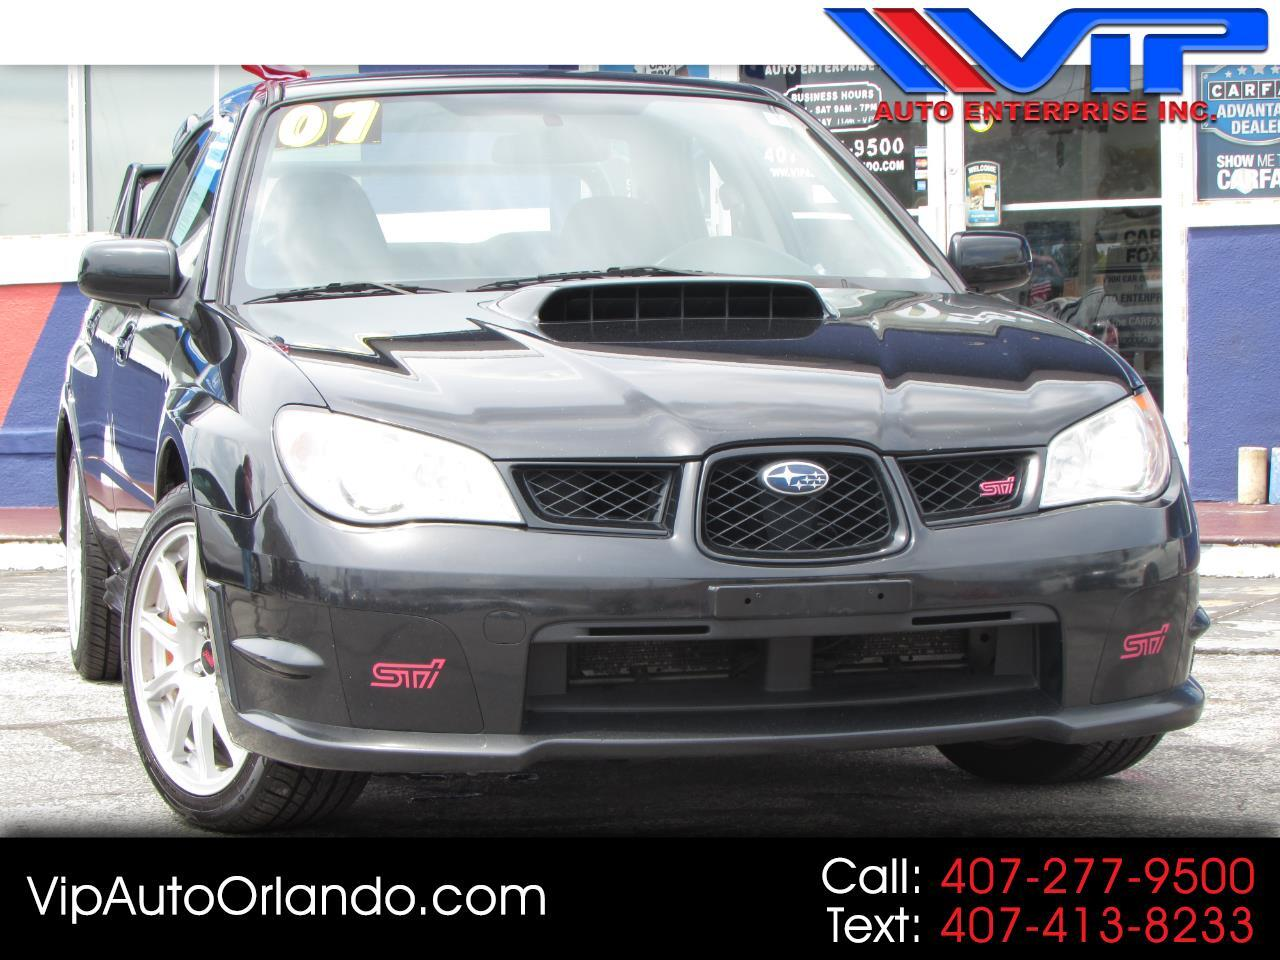 2007 Subaru Impreza Sedan 4dr H4 Turbo WRX STI w/Slver Wheels